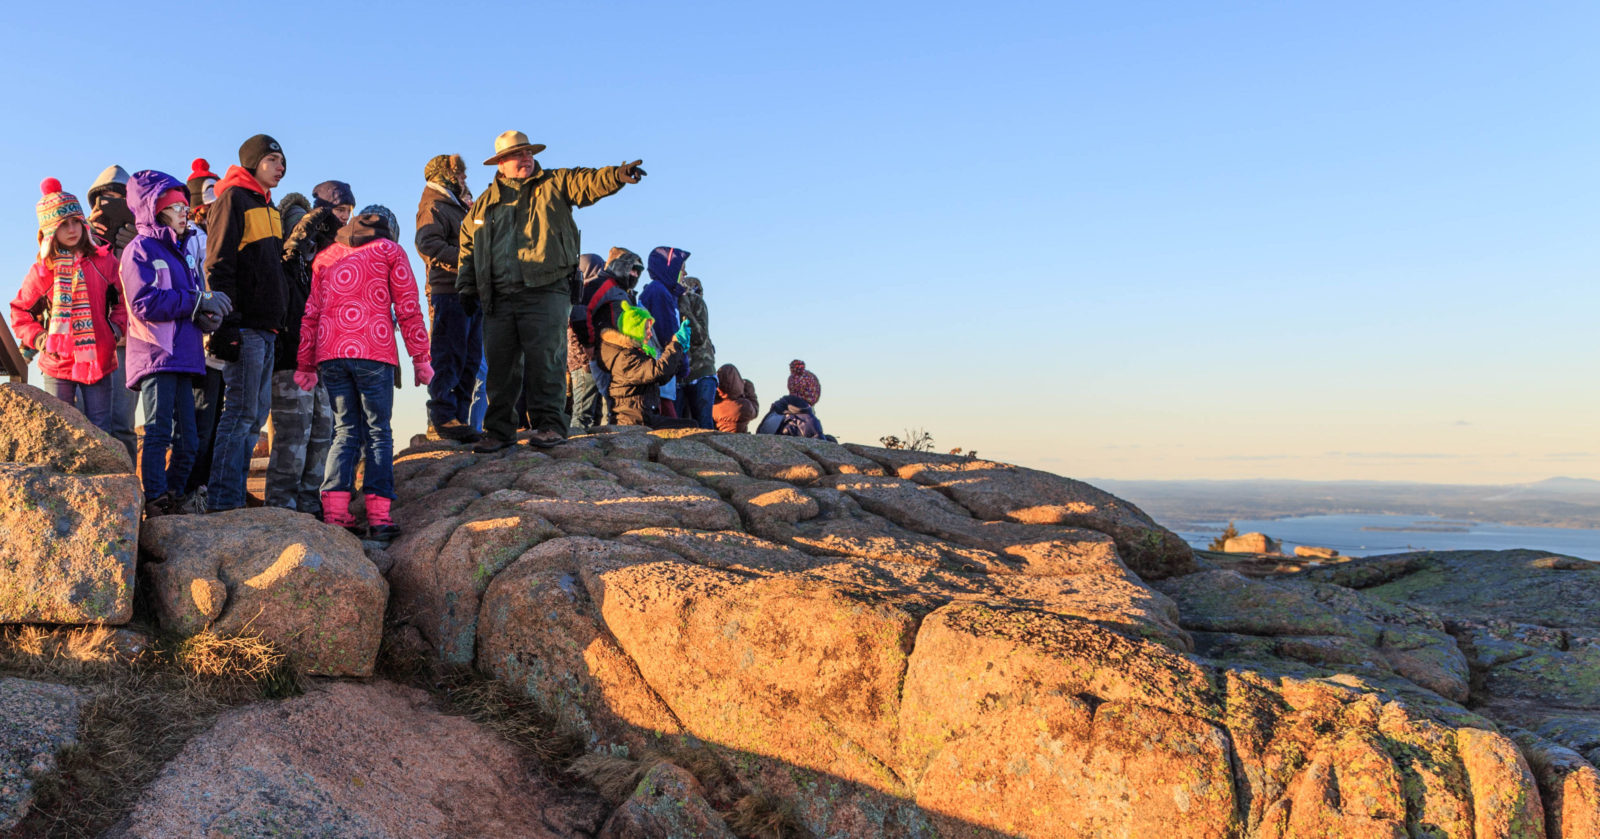 A school group experiences Cadillac Mountain with a park ranger. NPS/Kristi Rugg photo